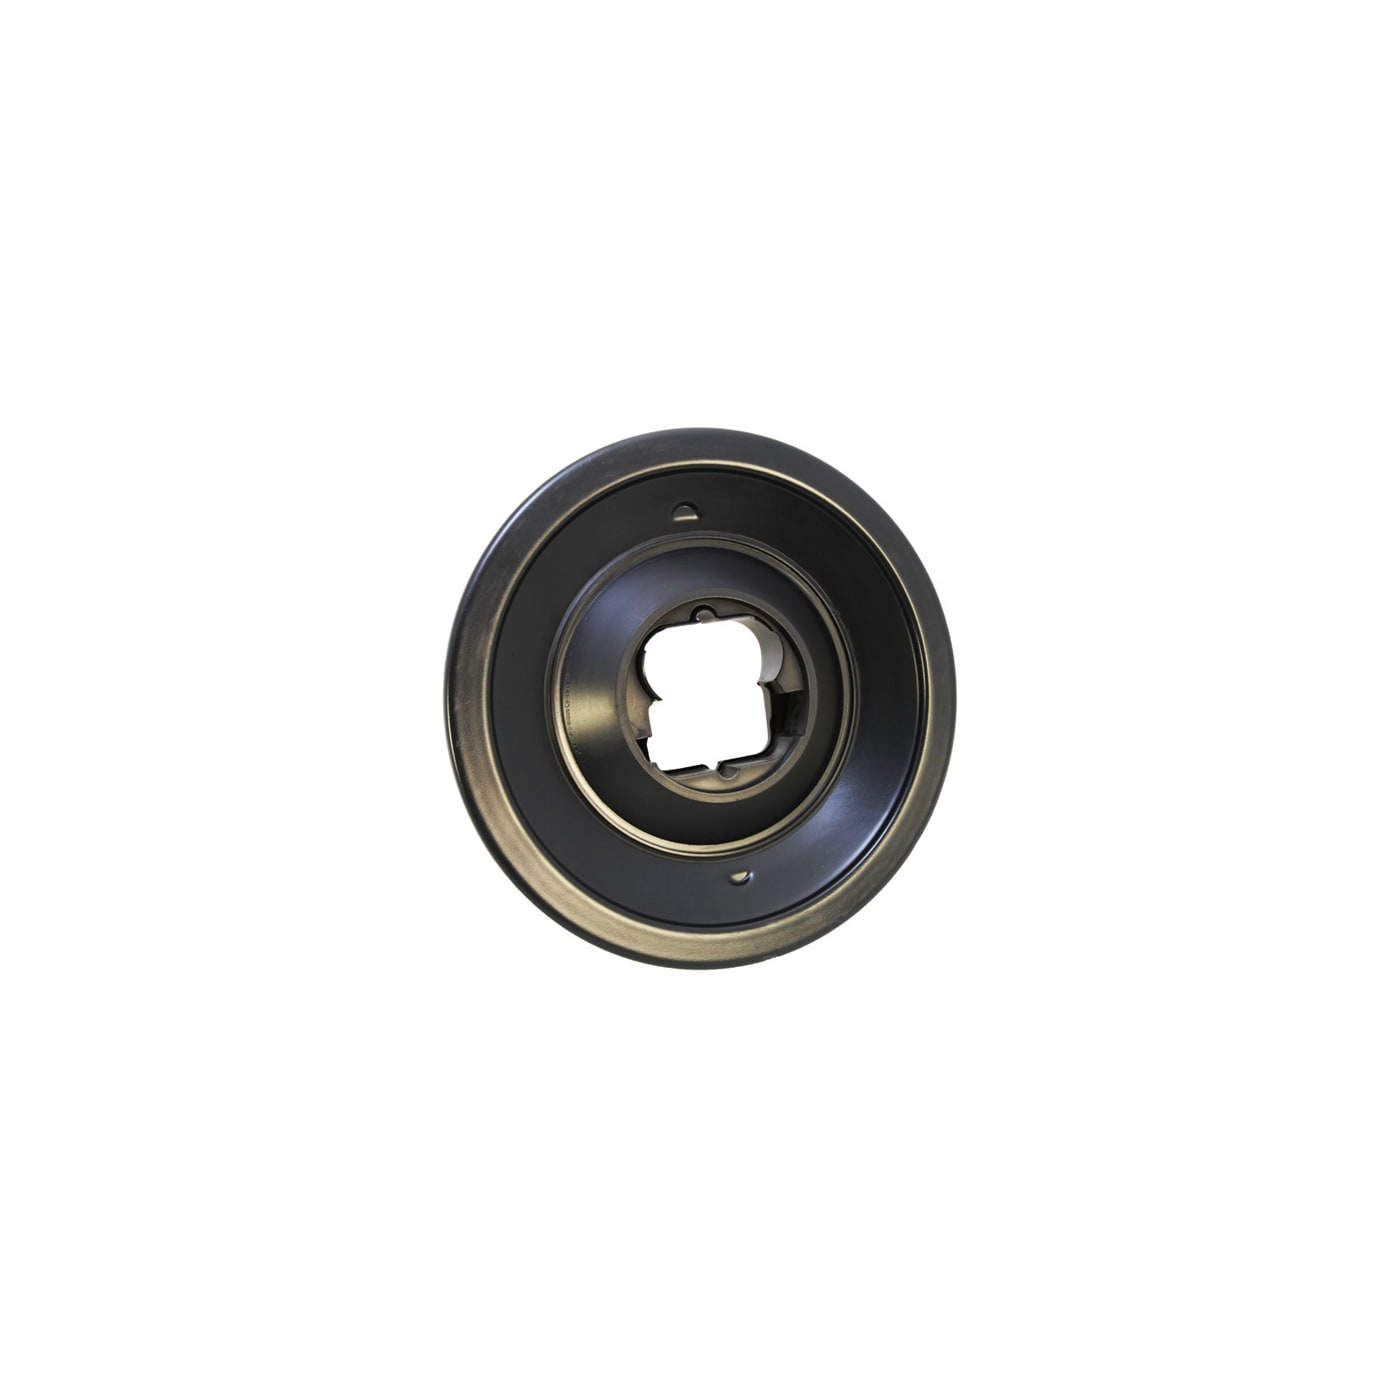 K/&N Base Plate For BP 14OD FLOW CONTROL 03574